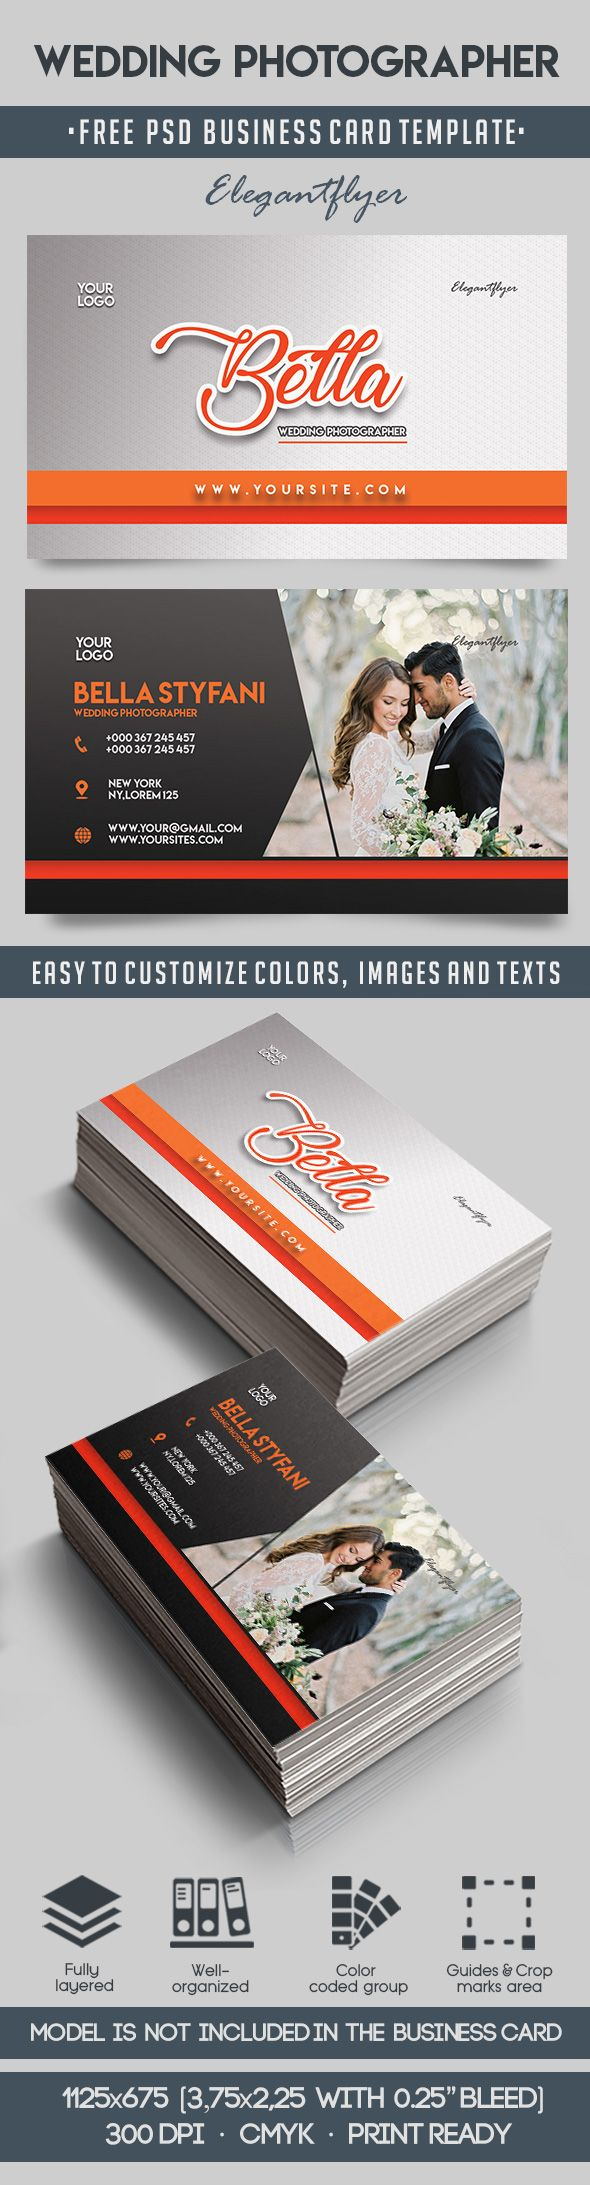 Free Business Card Wedding Photographer